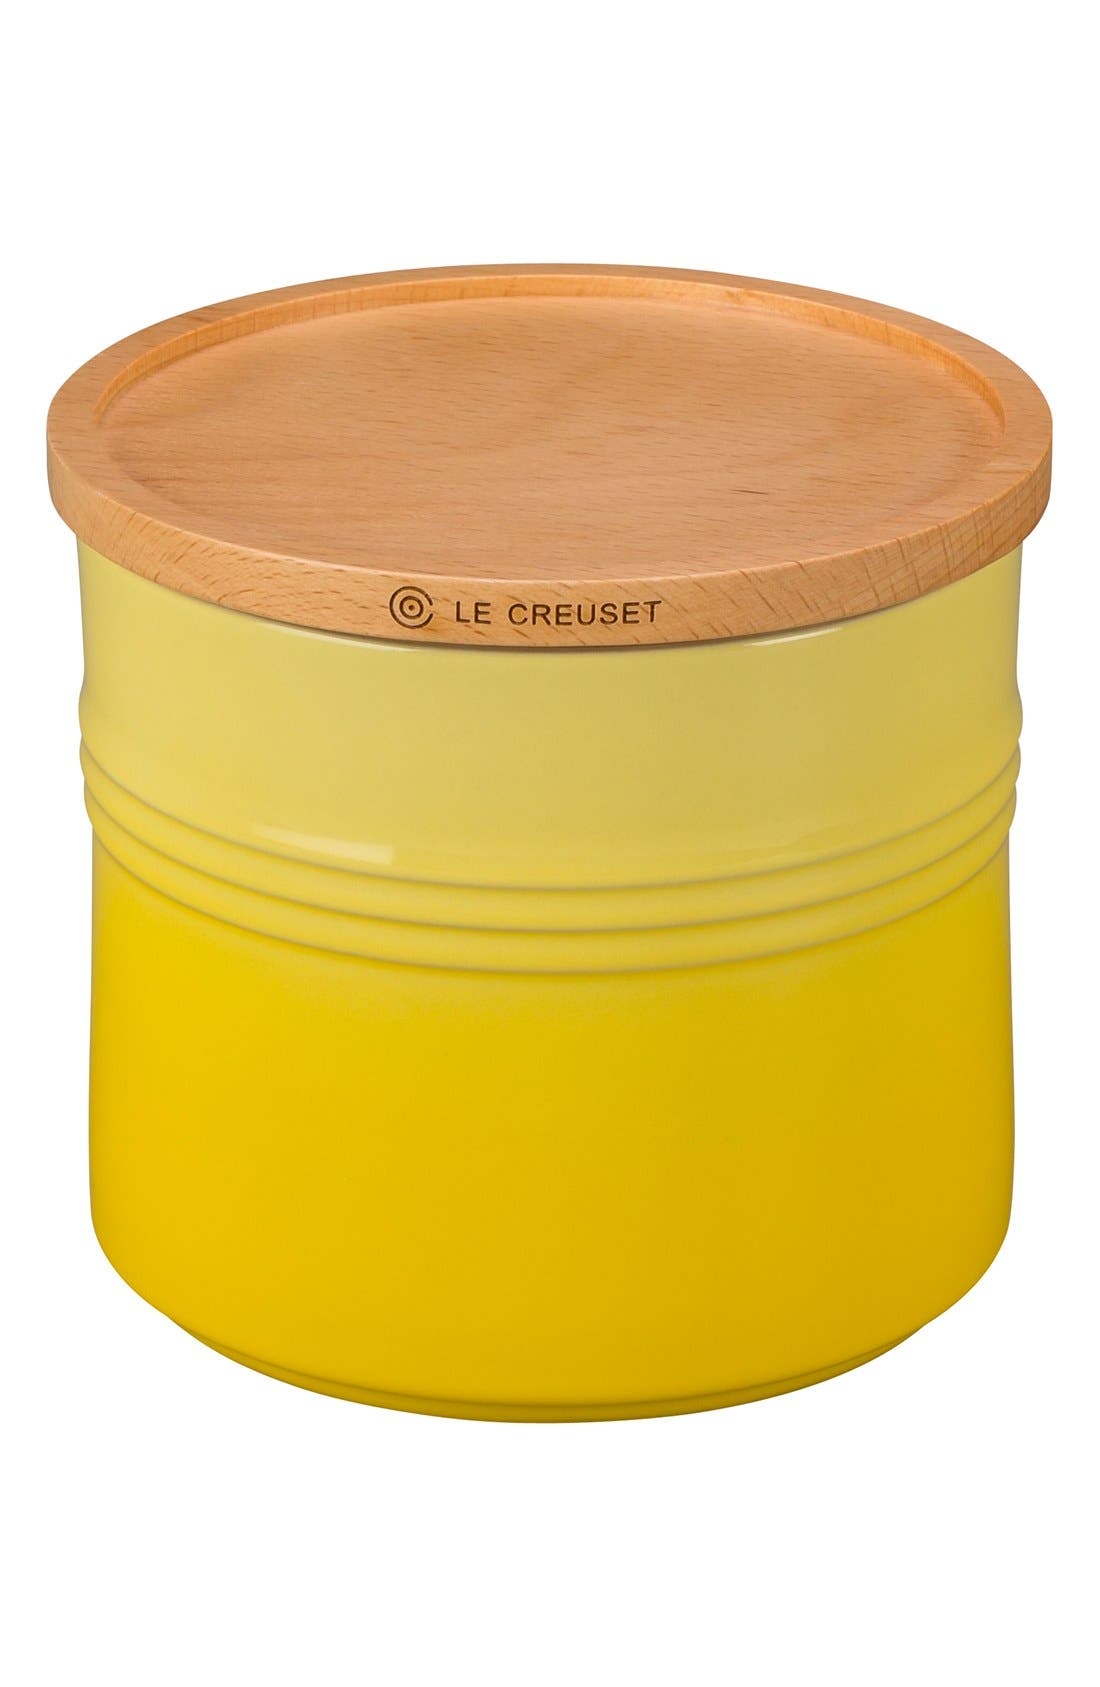 Glazed Stoneware 1 1/2 Quart Storage Canister with Wooden Lid,                         Main,                         color, SOLEIL